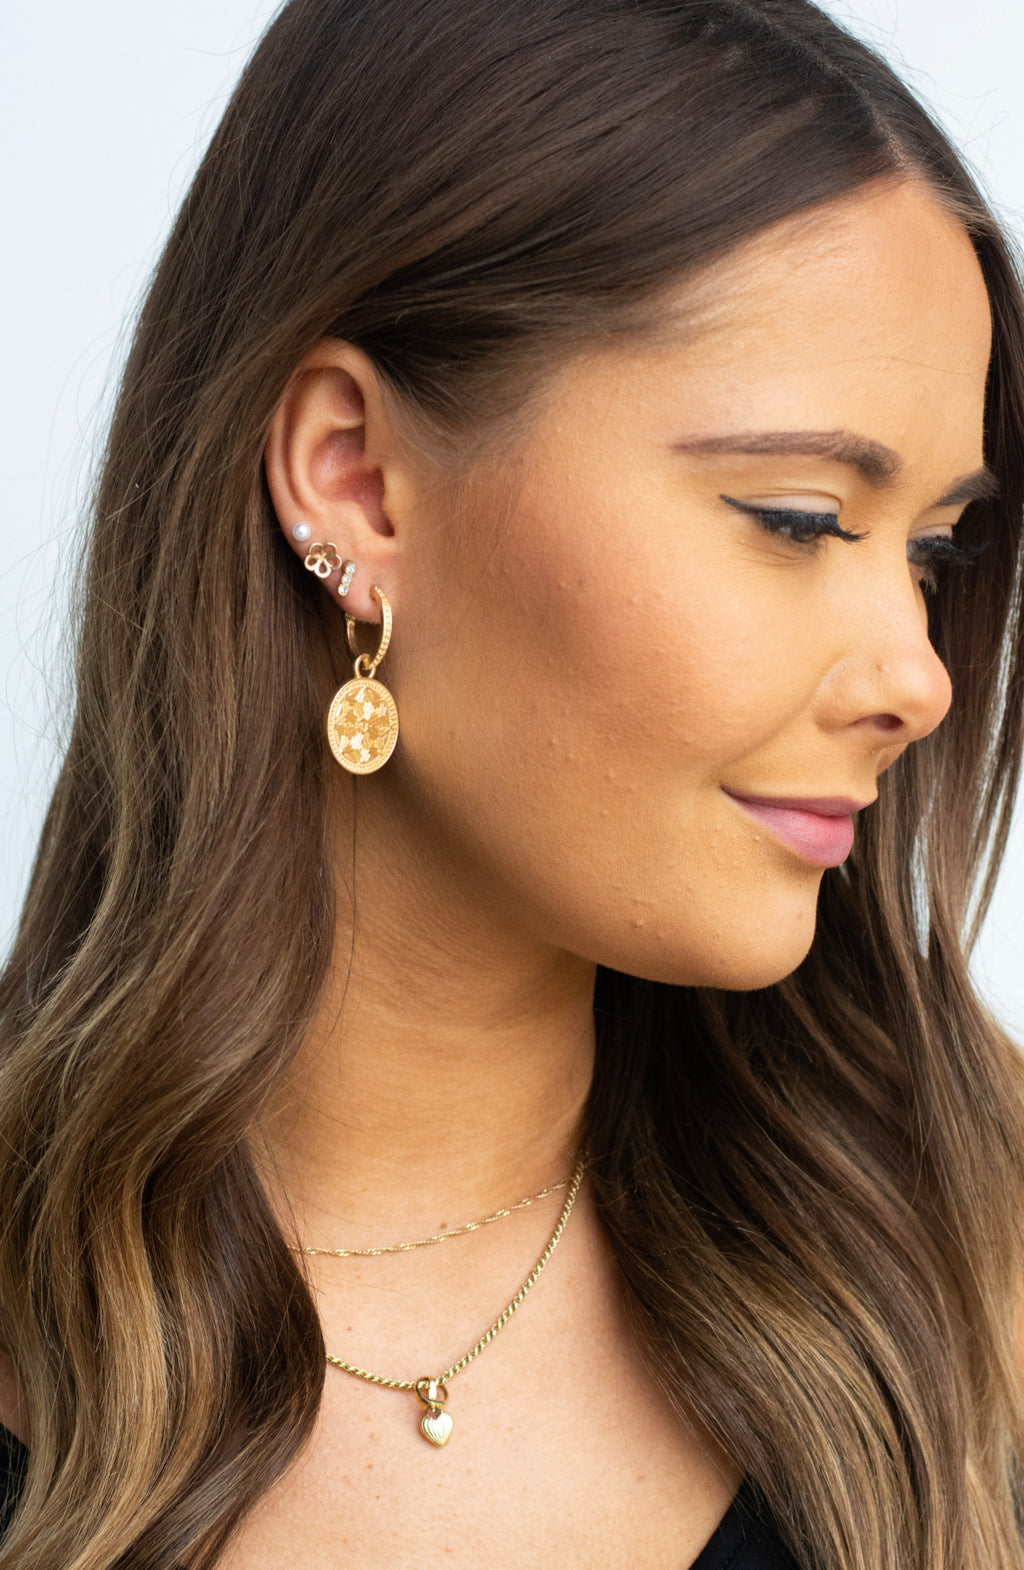 Worn Gold Coin Charm Drop Earrings